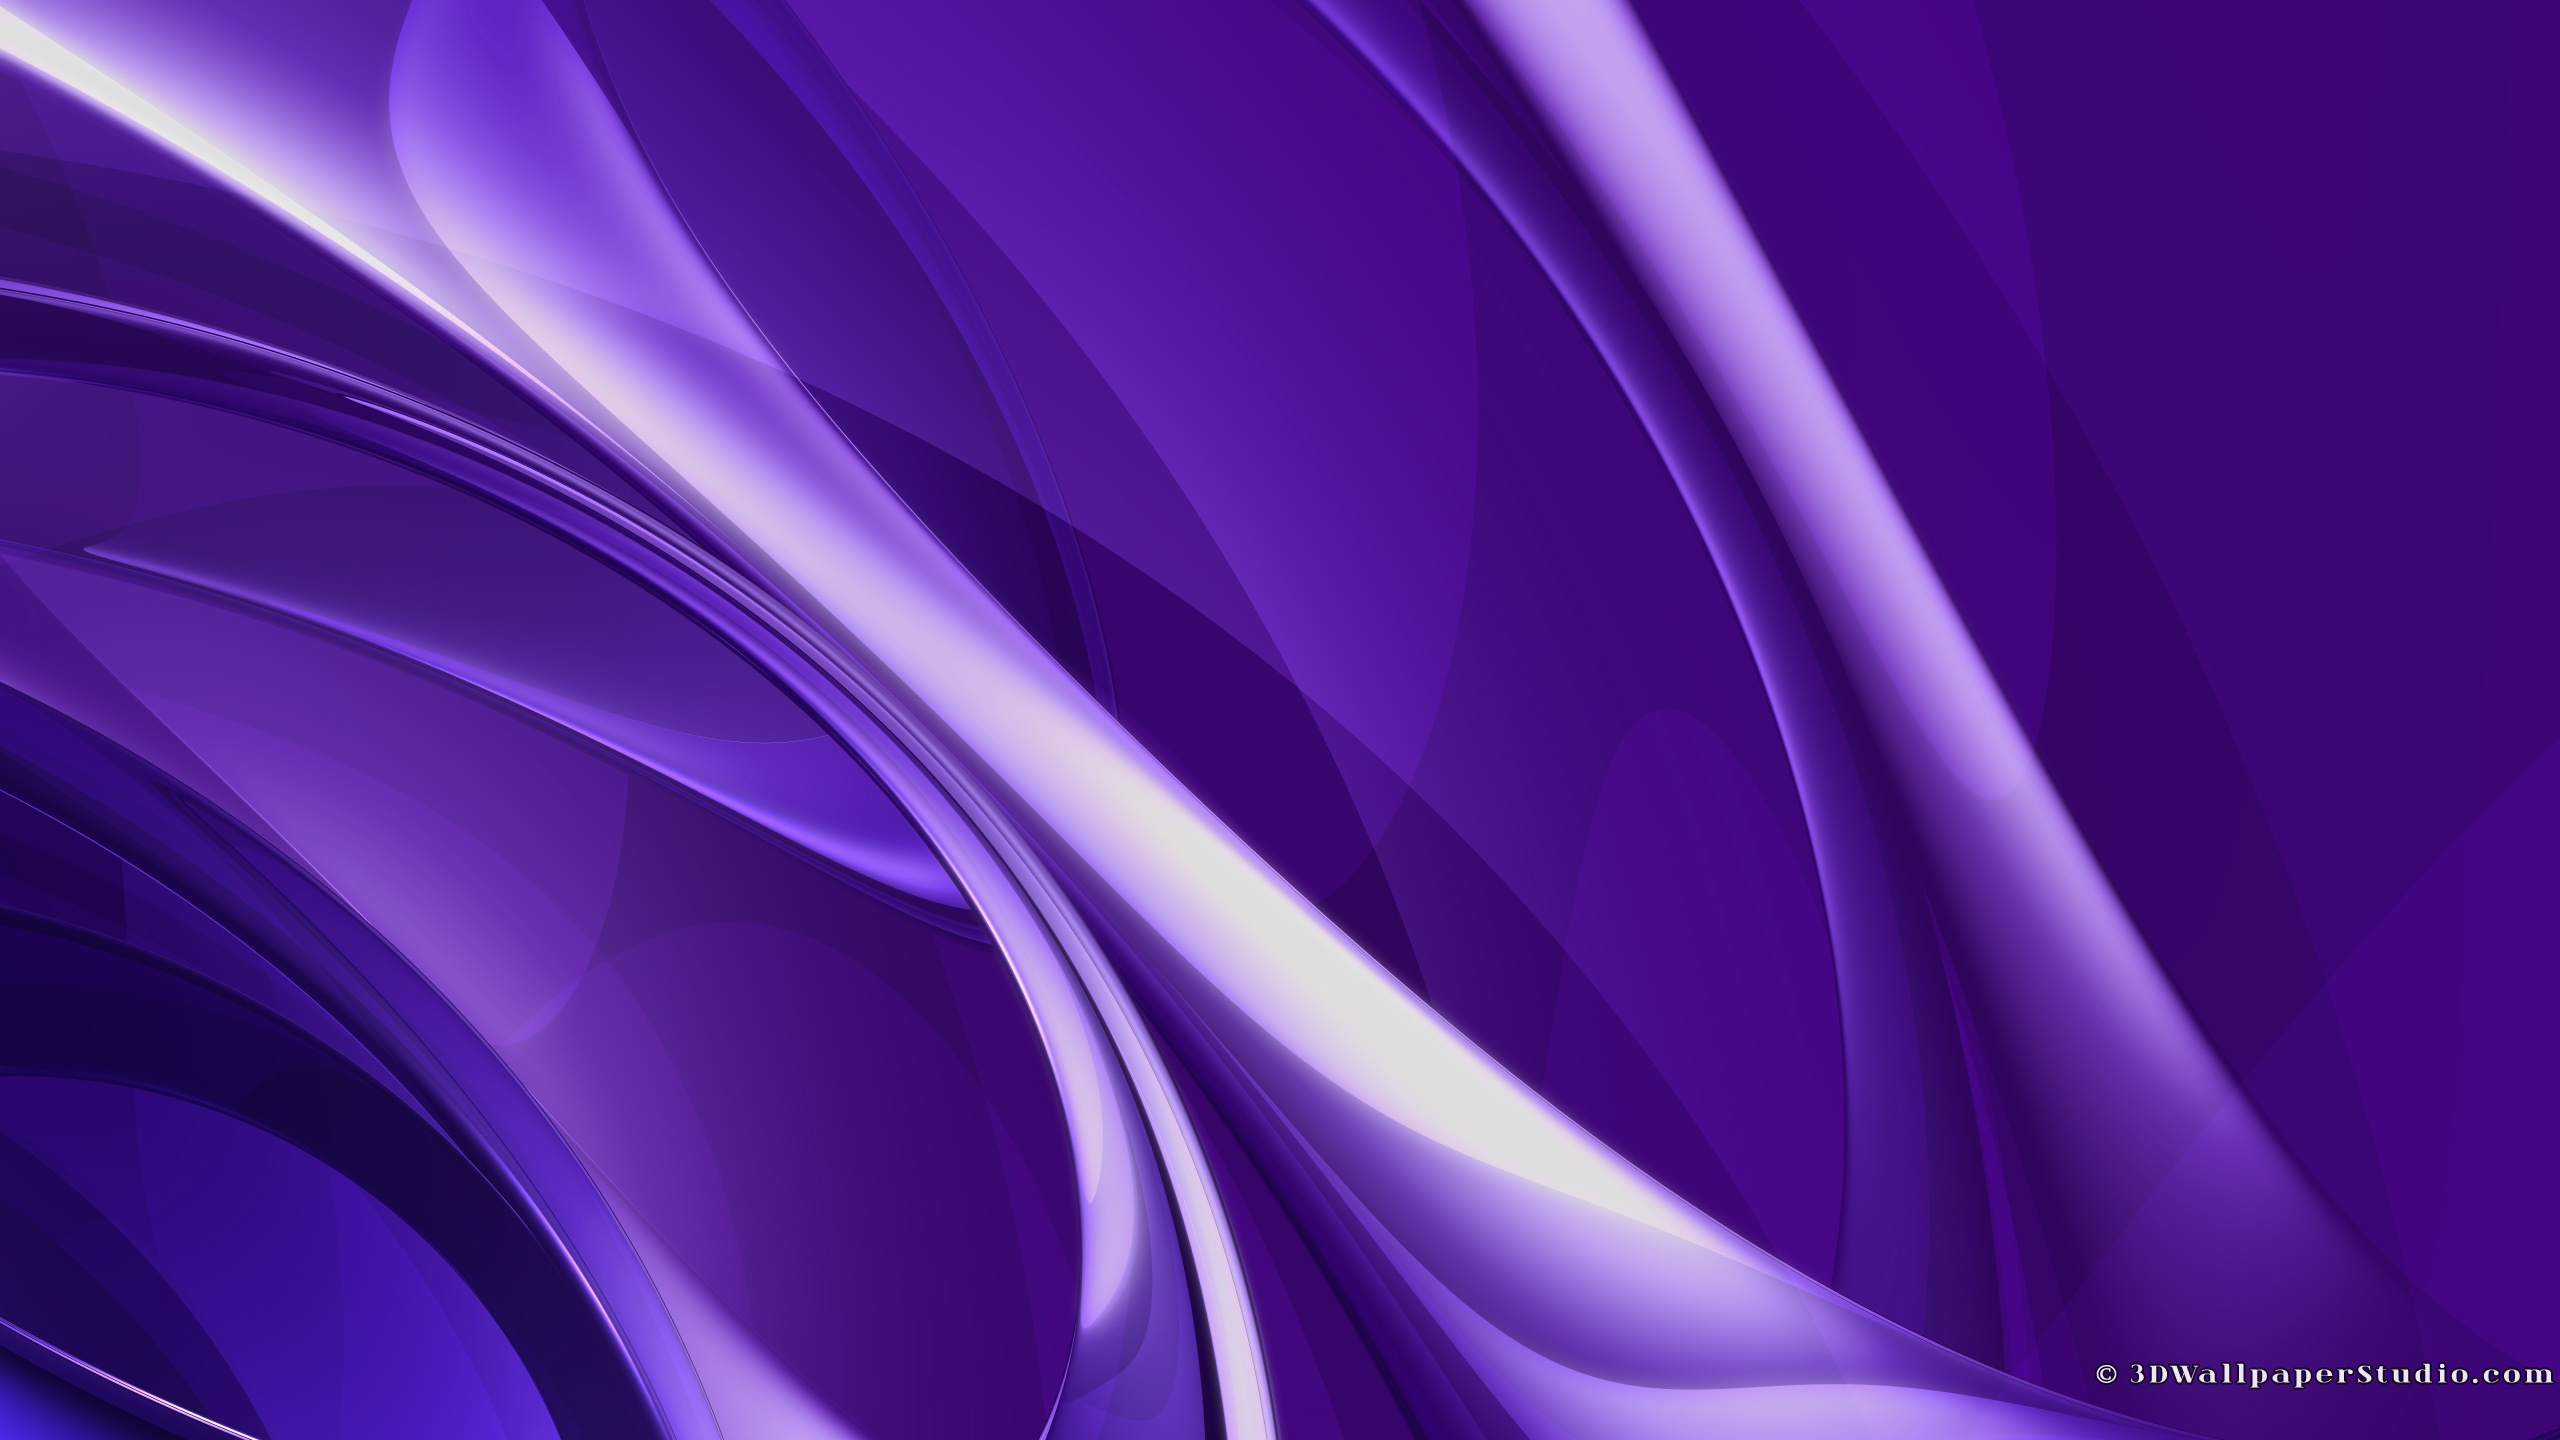 76 Awesome Purple Backgrounds On Wallpapersafari